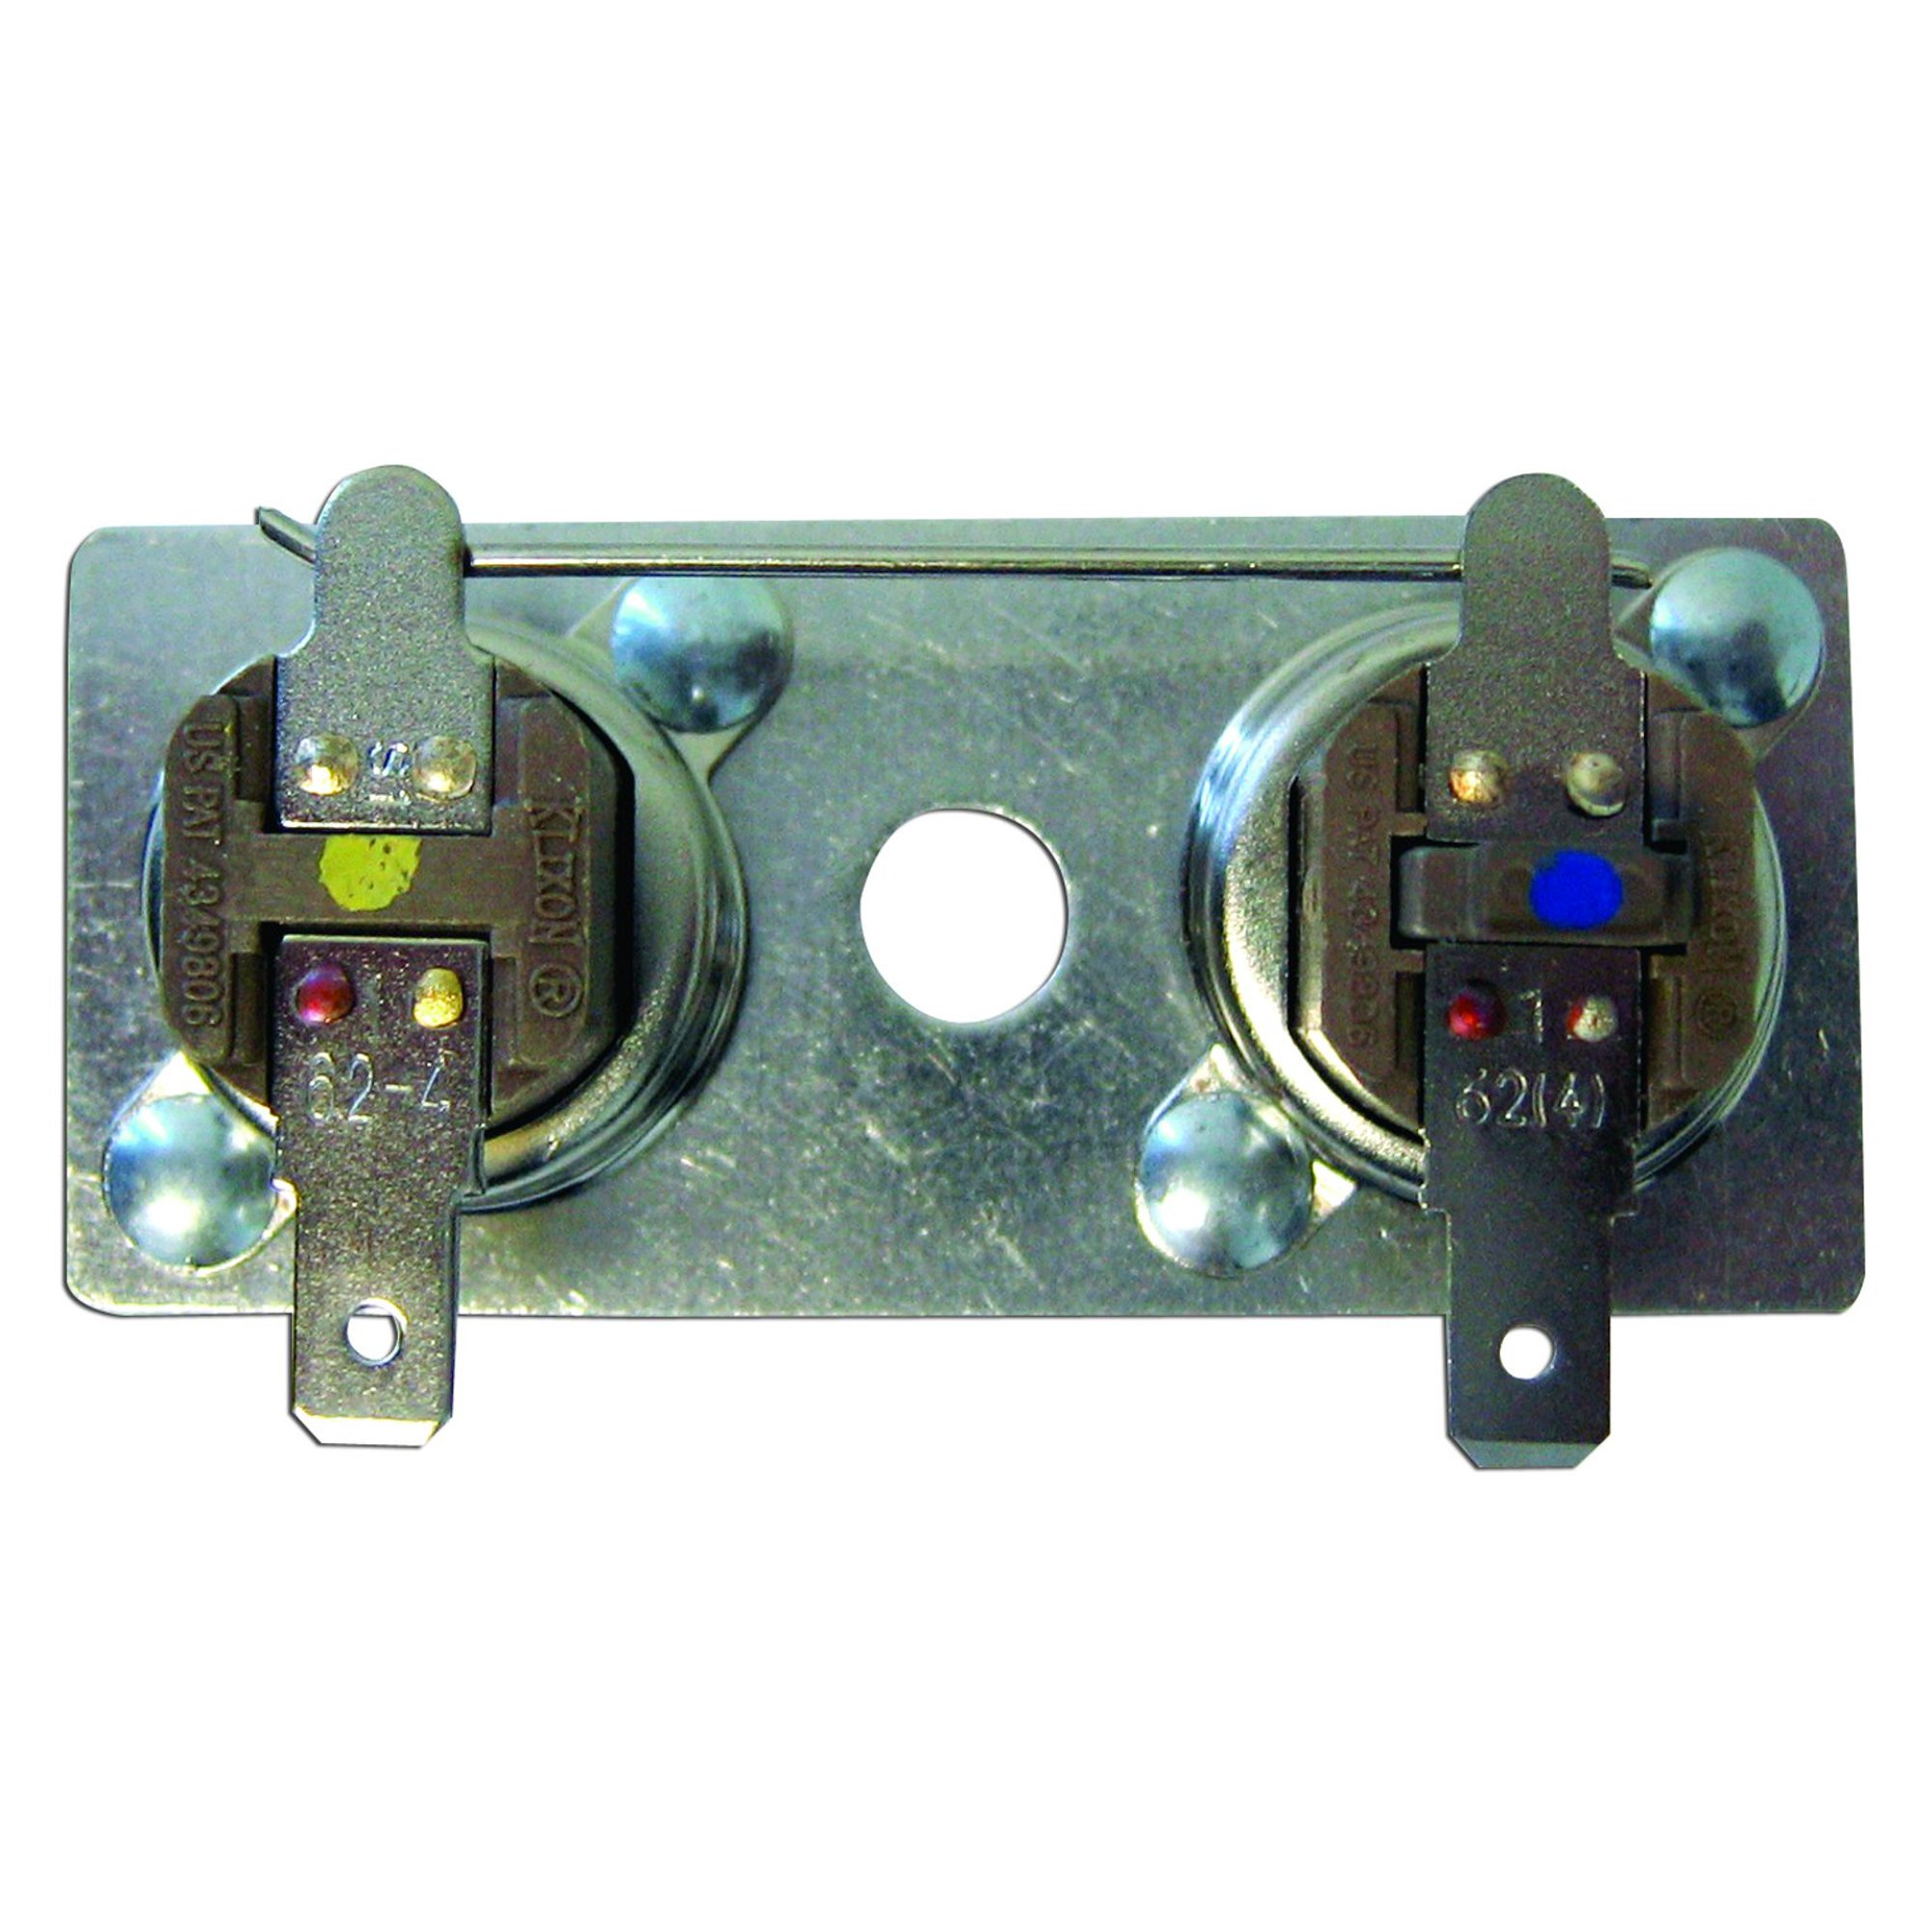 M C Enterprises 232317mc Water Heater Thermostat Switch For Suburban Limit 120 Volt Without Reset 140 Degree Canada